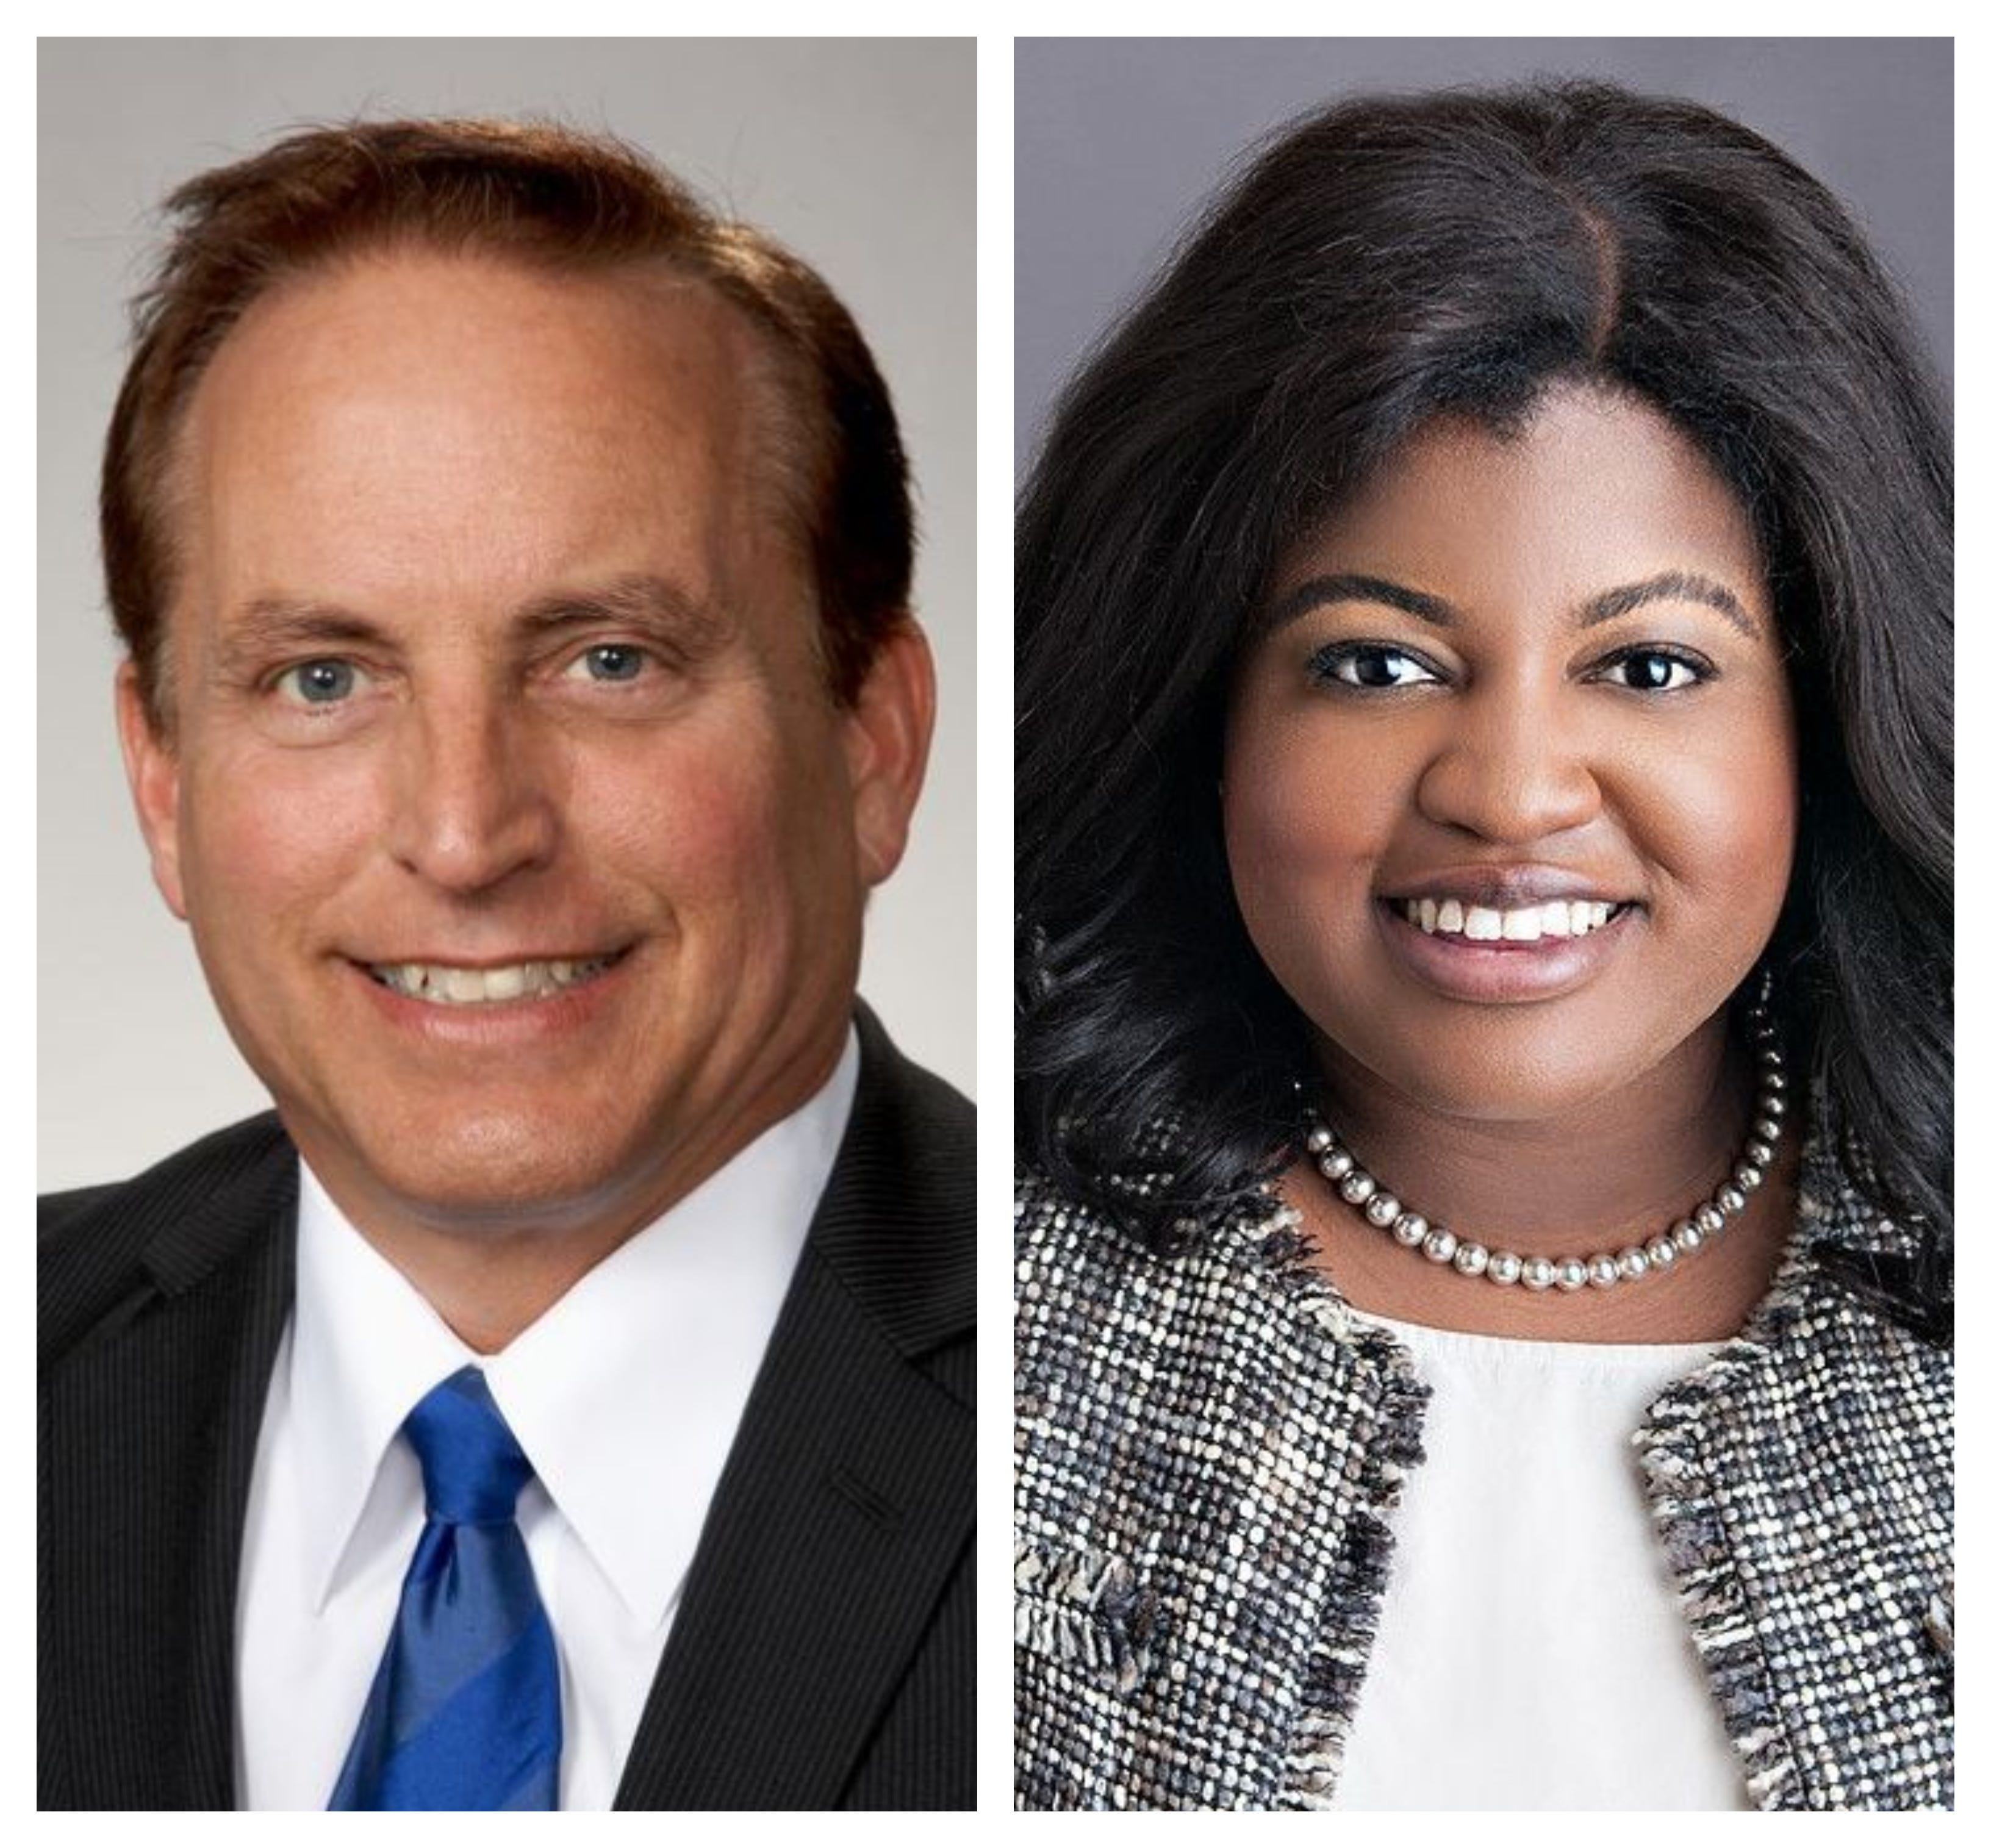 Secretary of State candidates in 2018 race: Paul Pate, left, and Deidre DeJear.